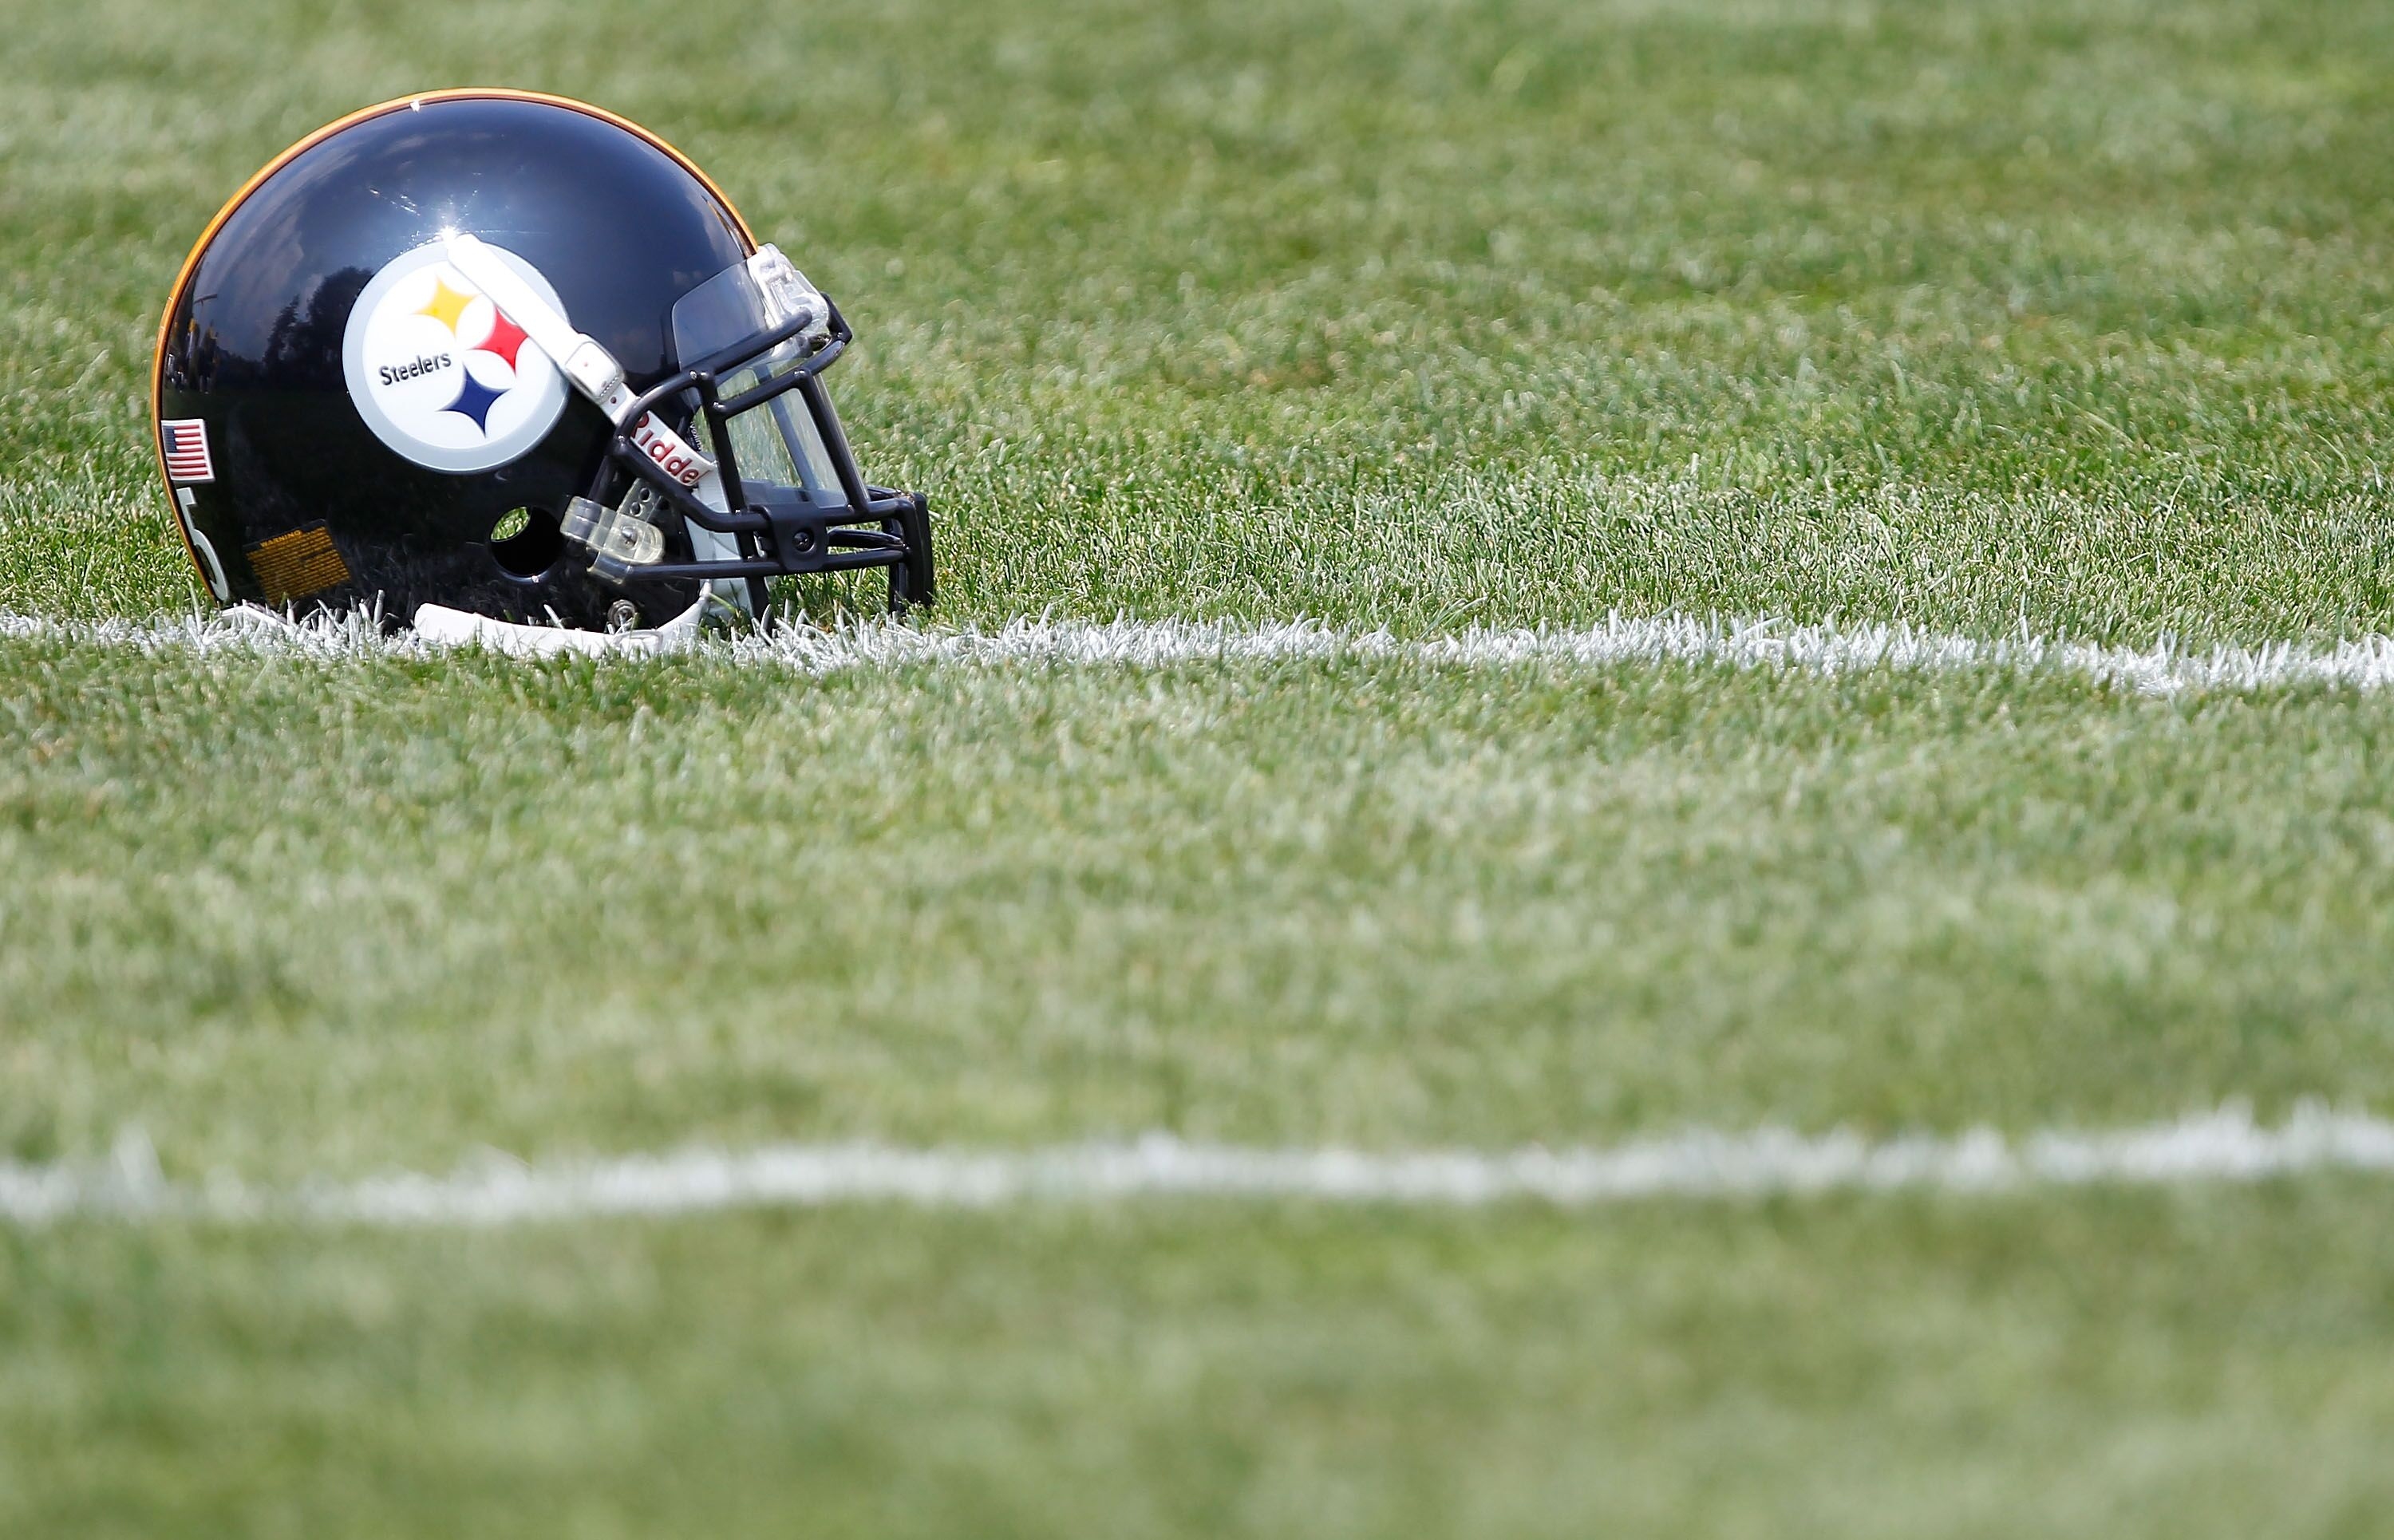 Sutton Smith works with the Steelers offense during OTAs